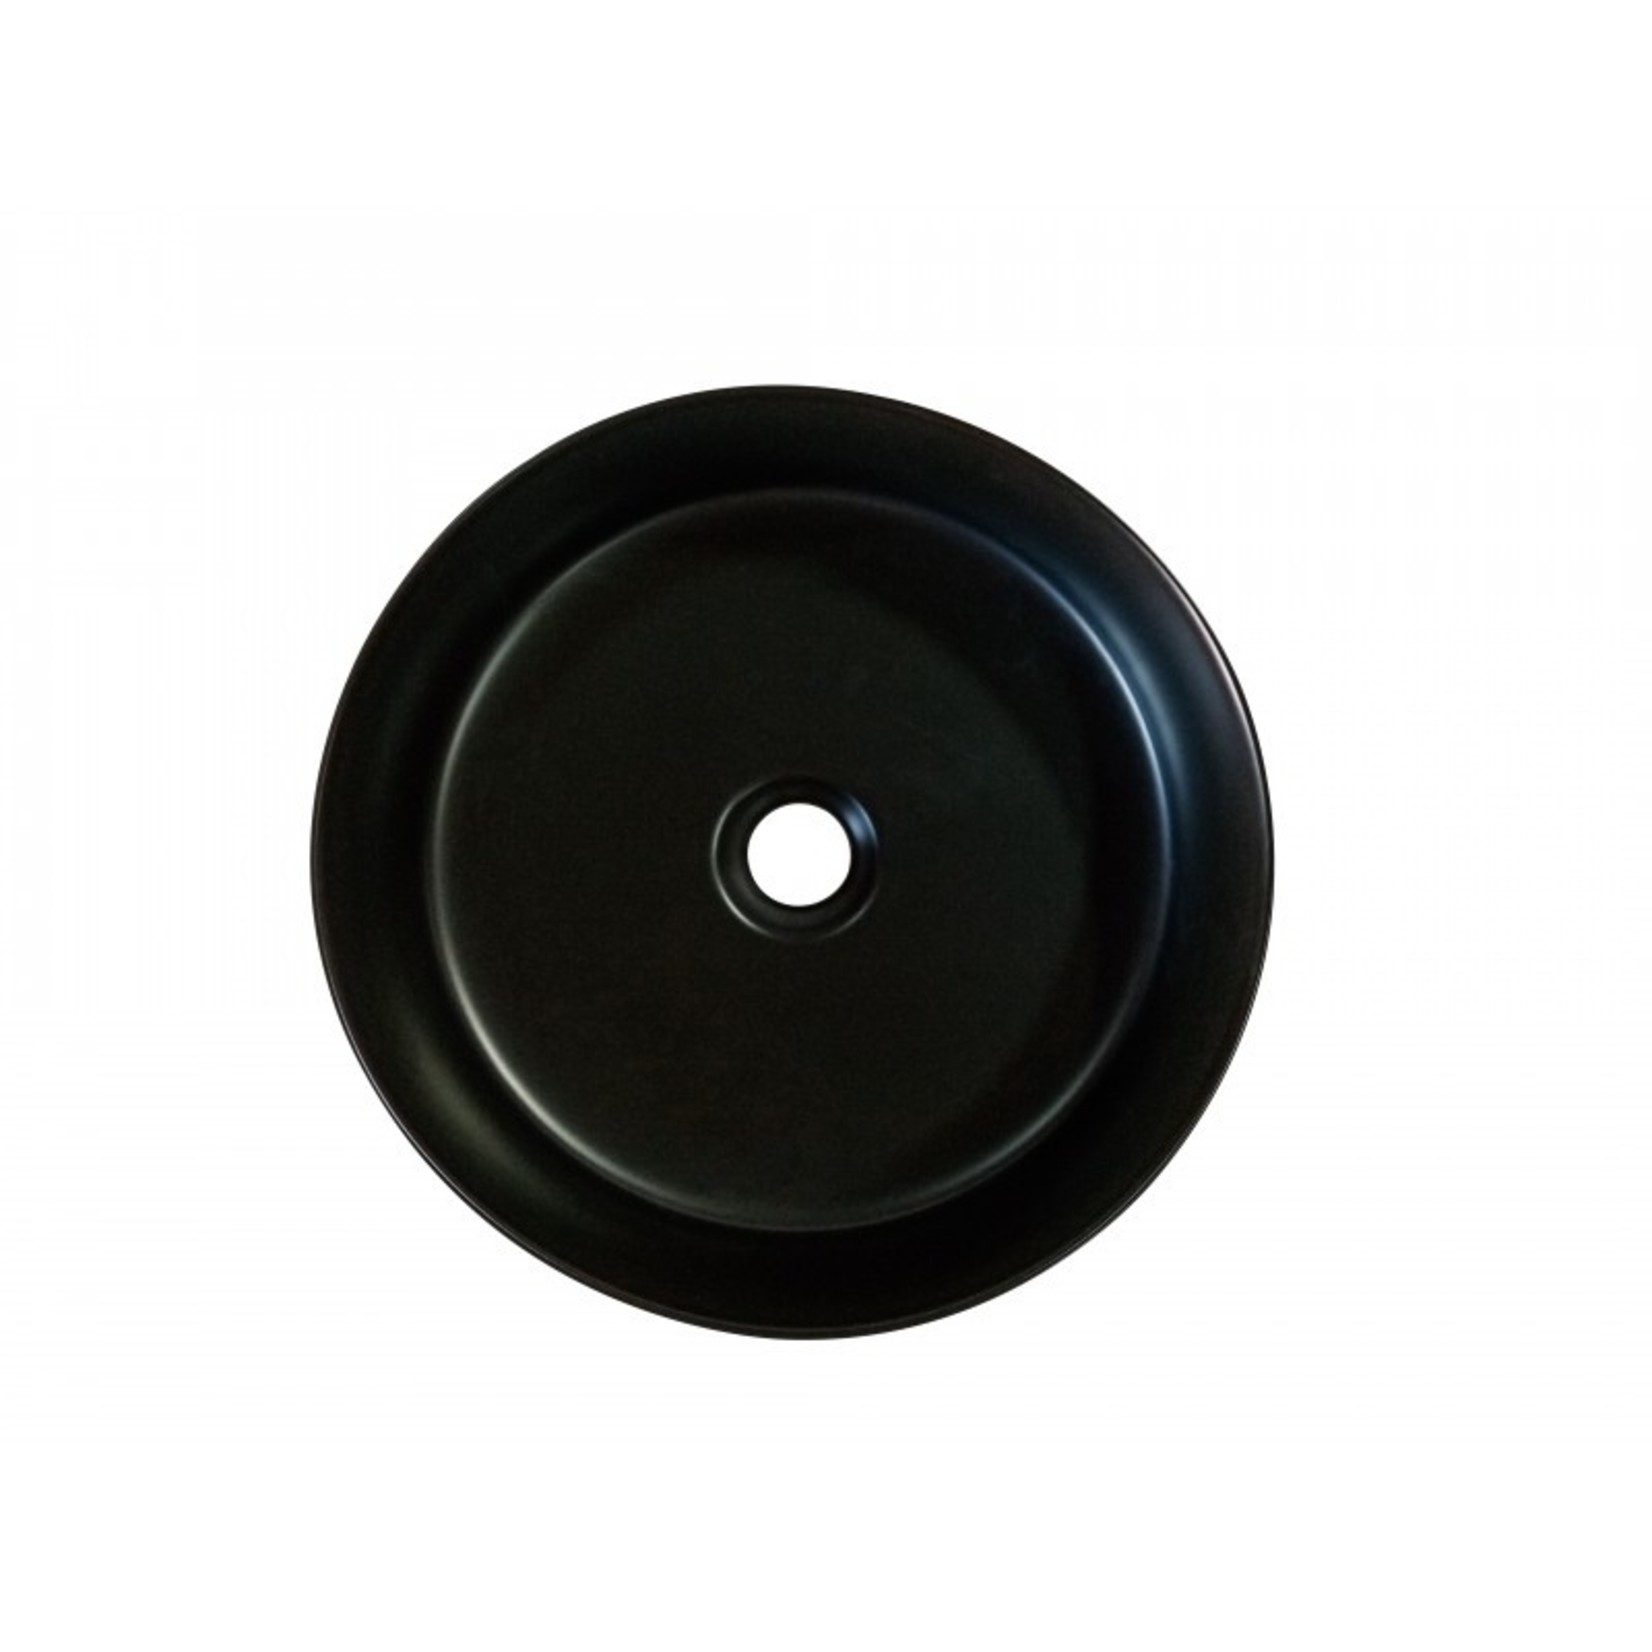 14 '' black porcelain sink DI-222-35B